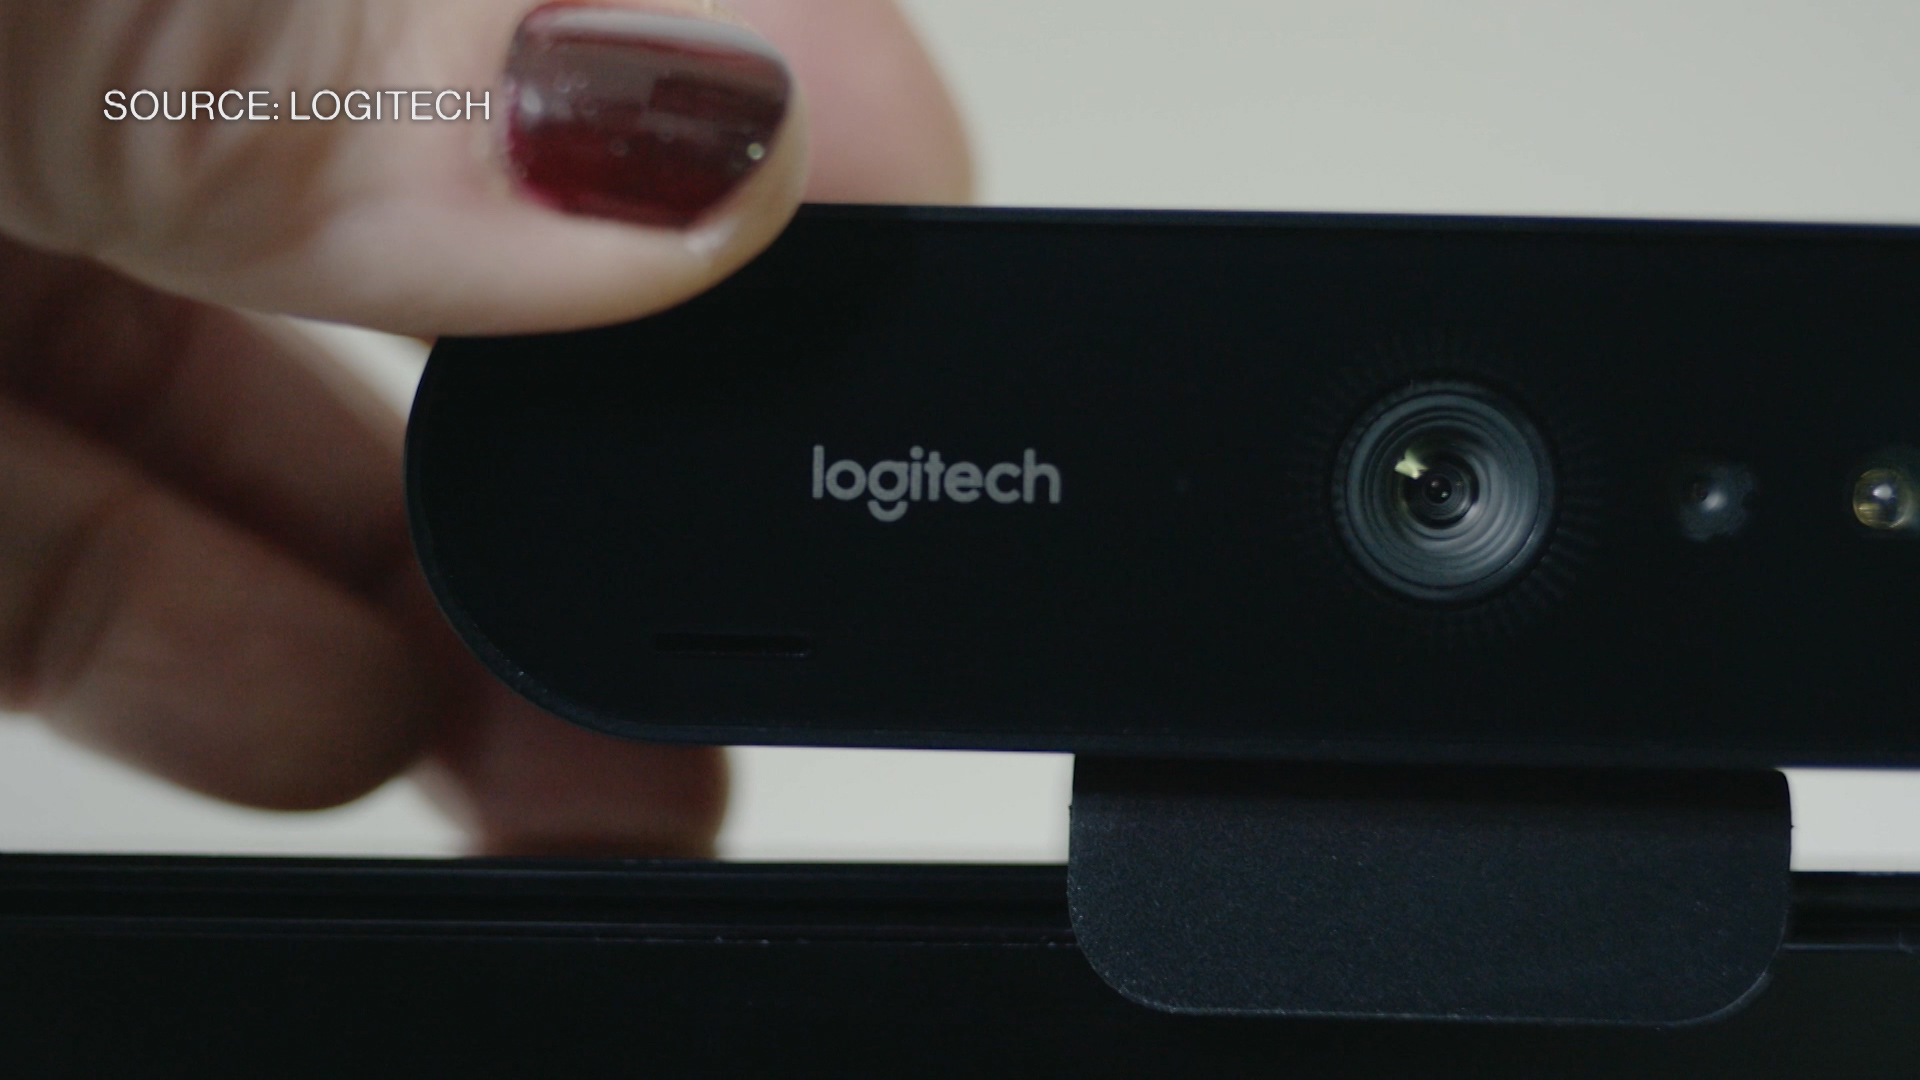 People Will Work From Home Permanently, Says Logitech CEO